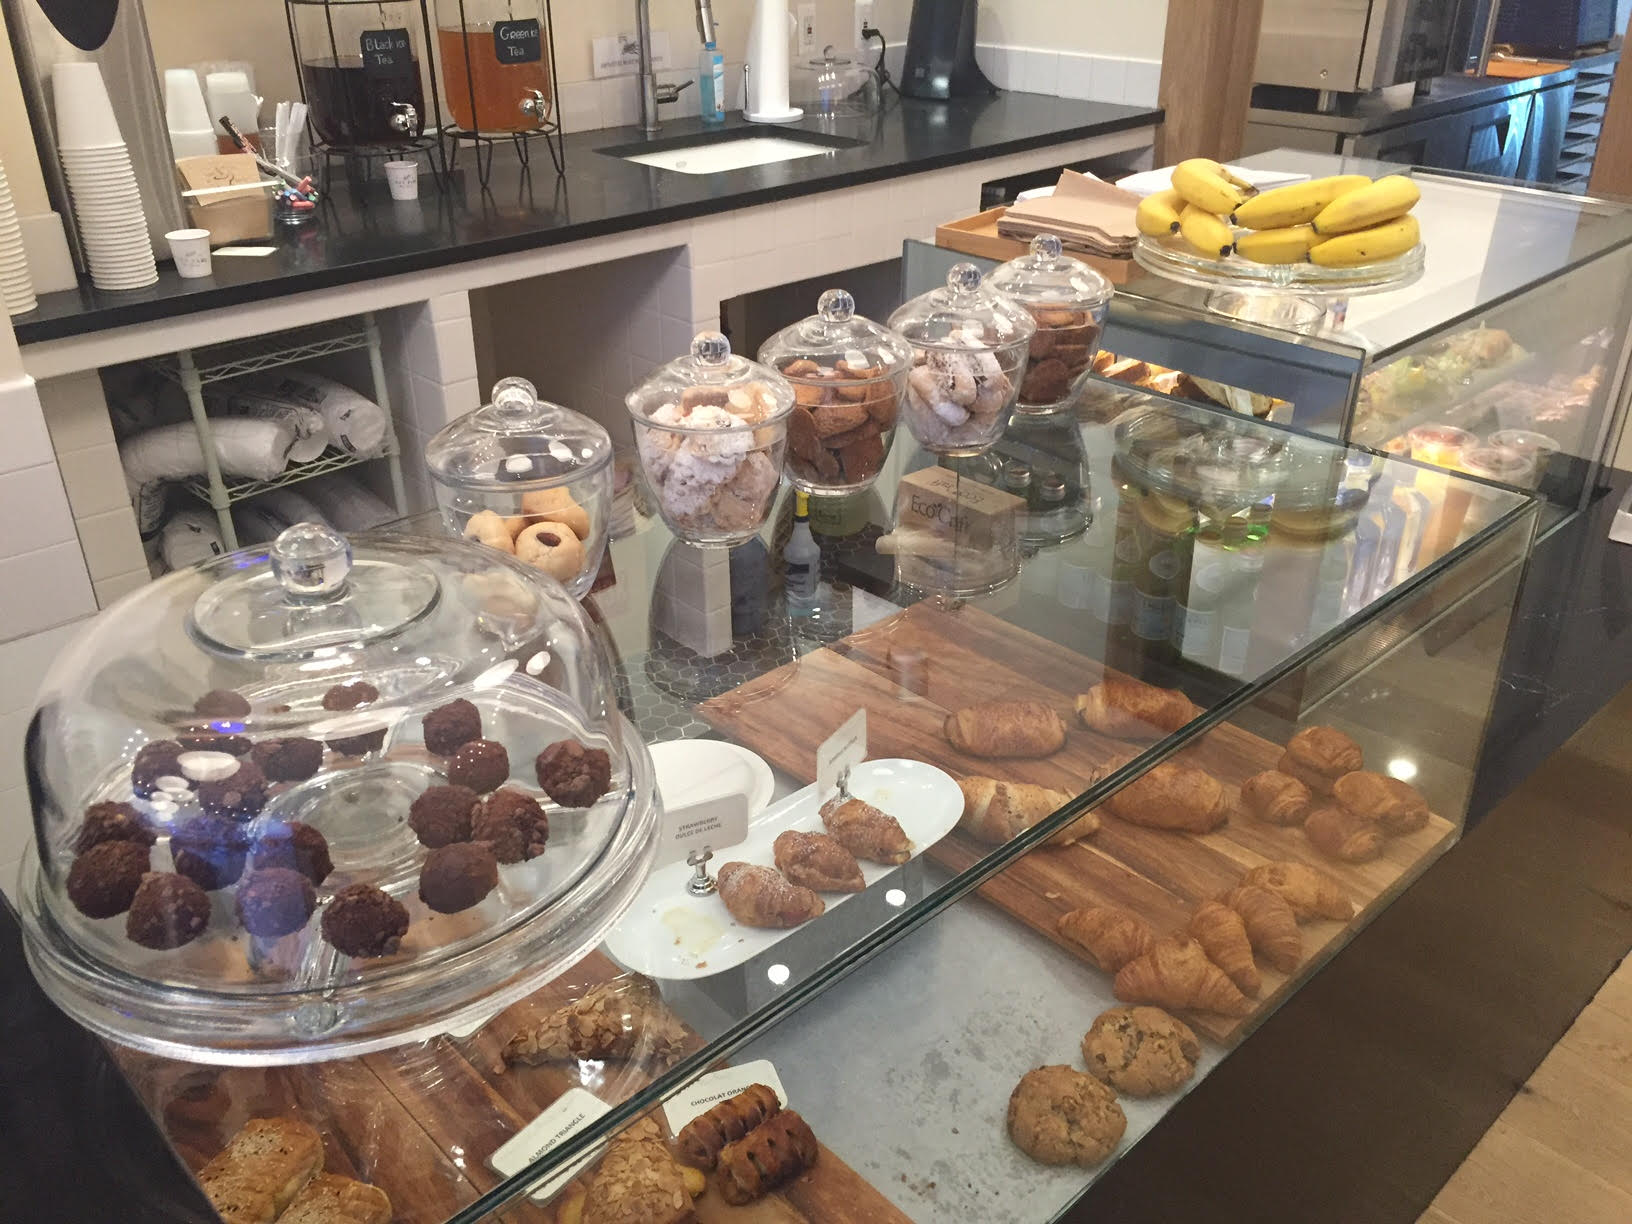 cafe-bari-kosher-midtown-nyc-pastries